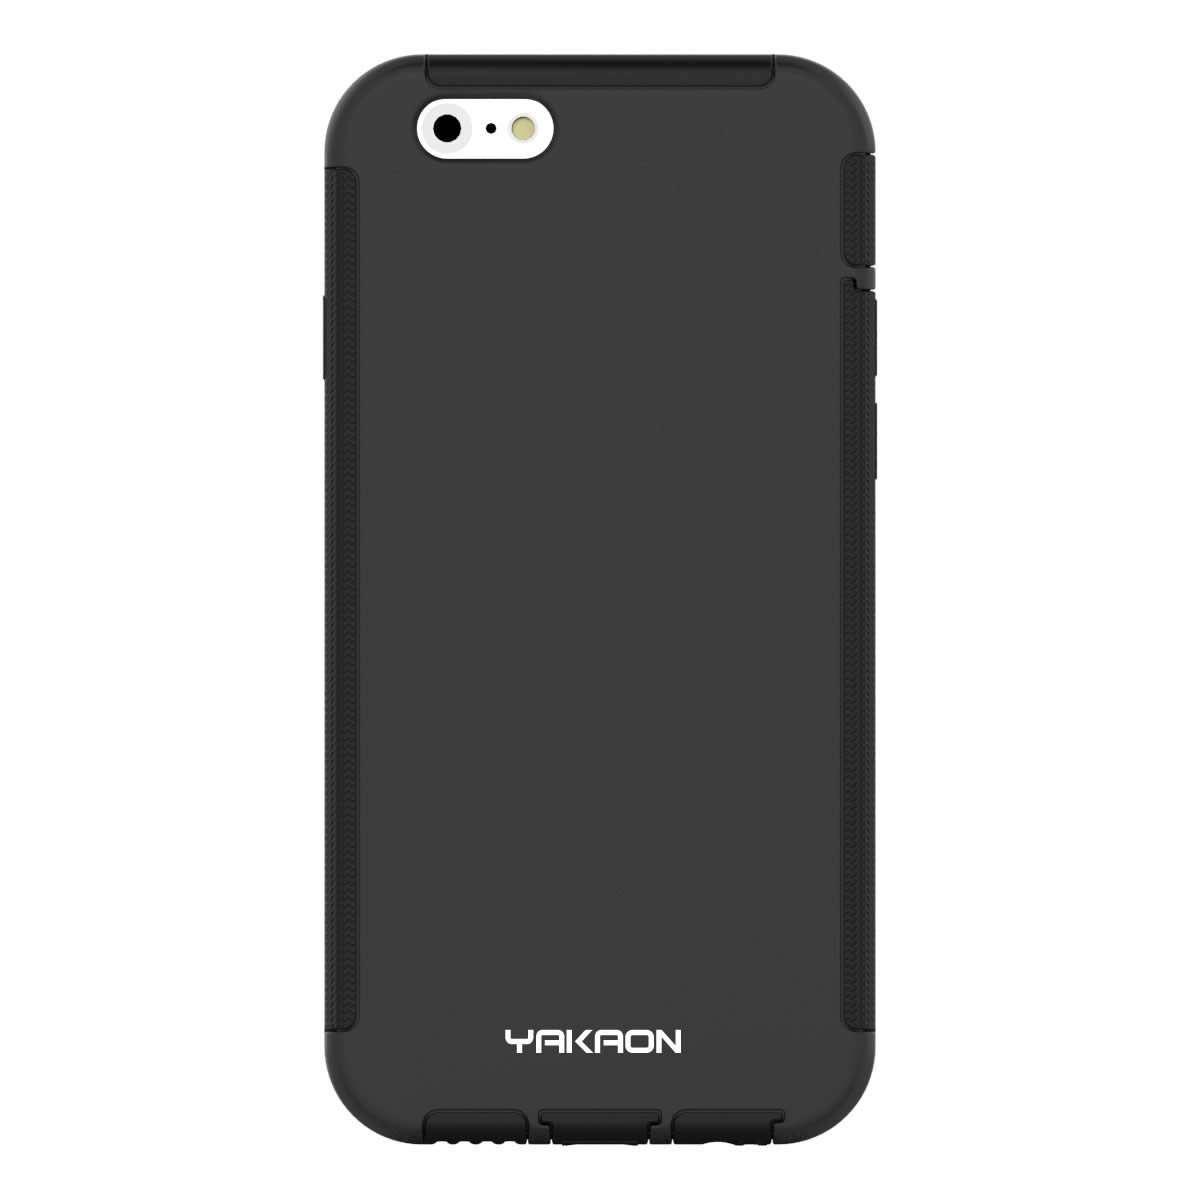 Durable Shatterproof, Dustproof, Shockproof Protective Case for iPhone 5S black